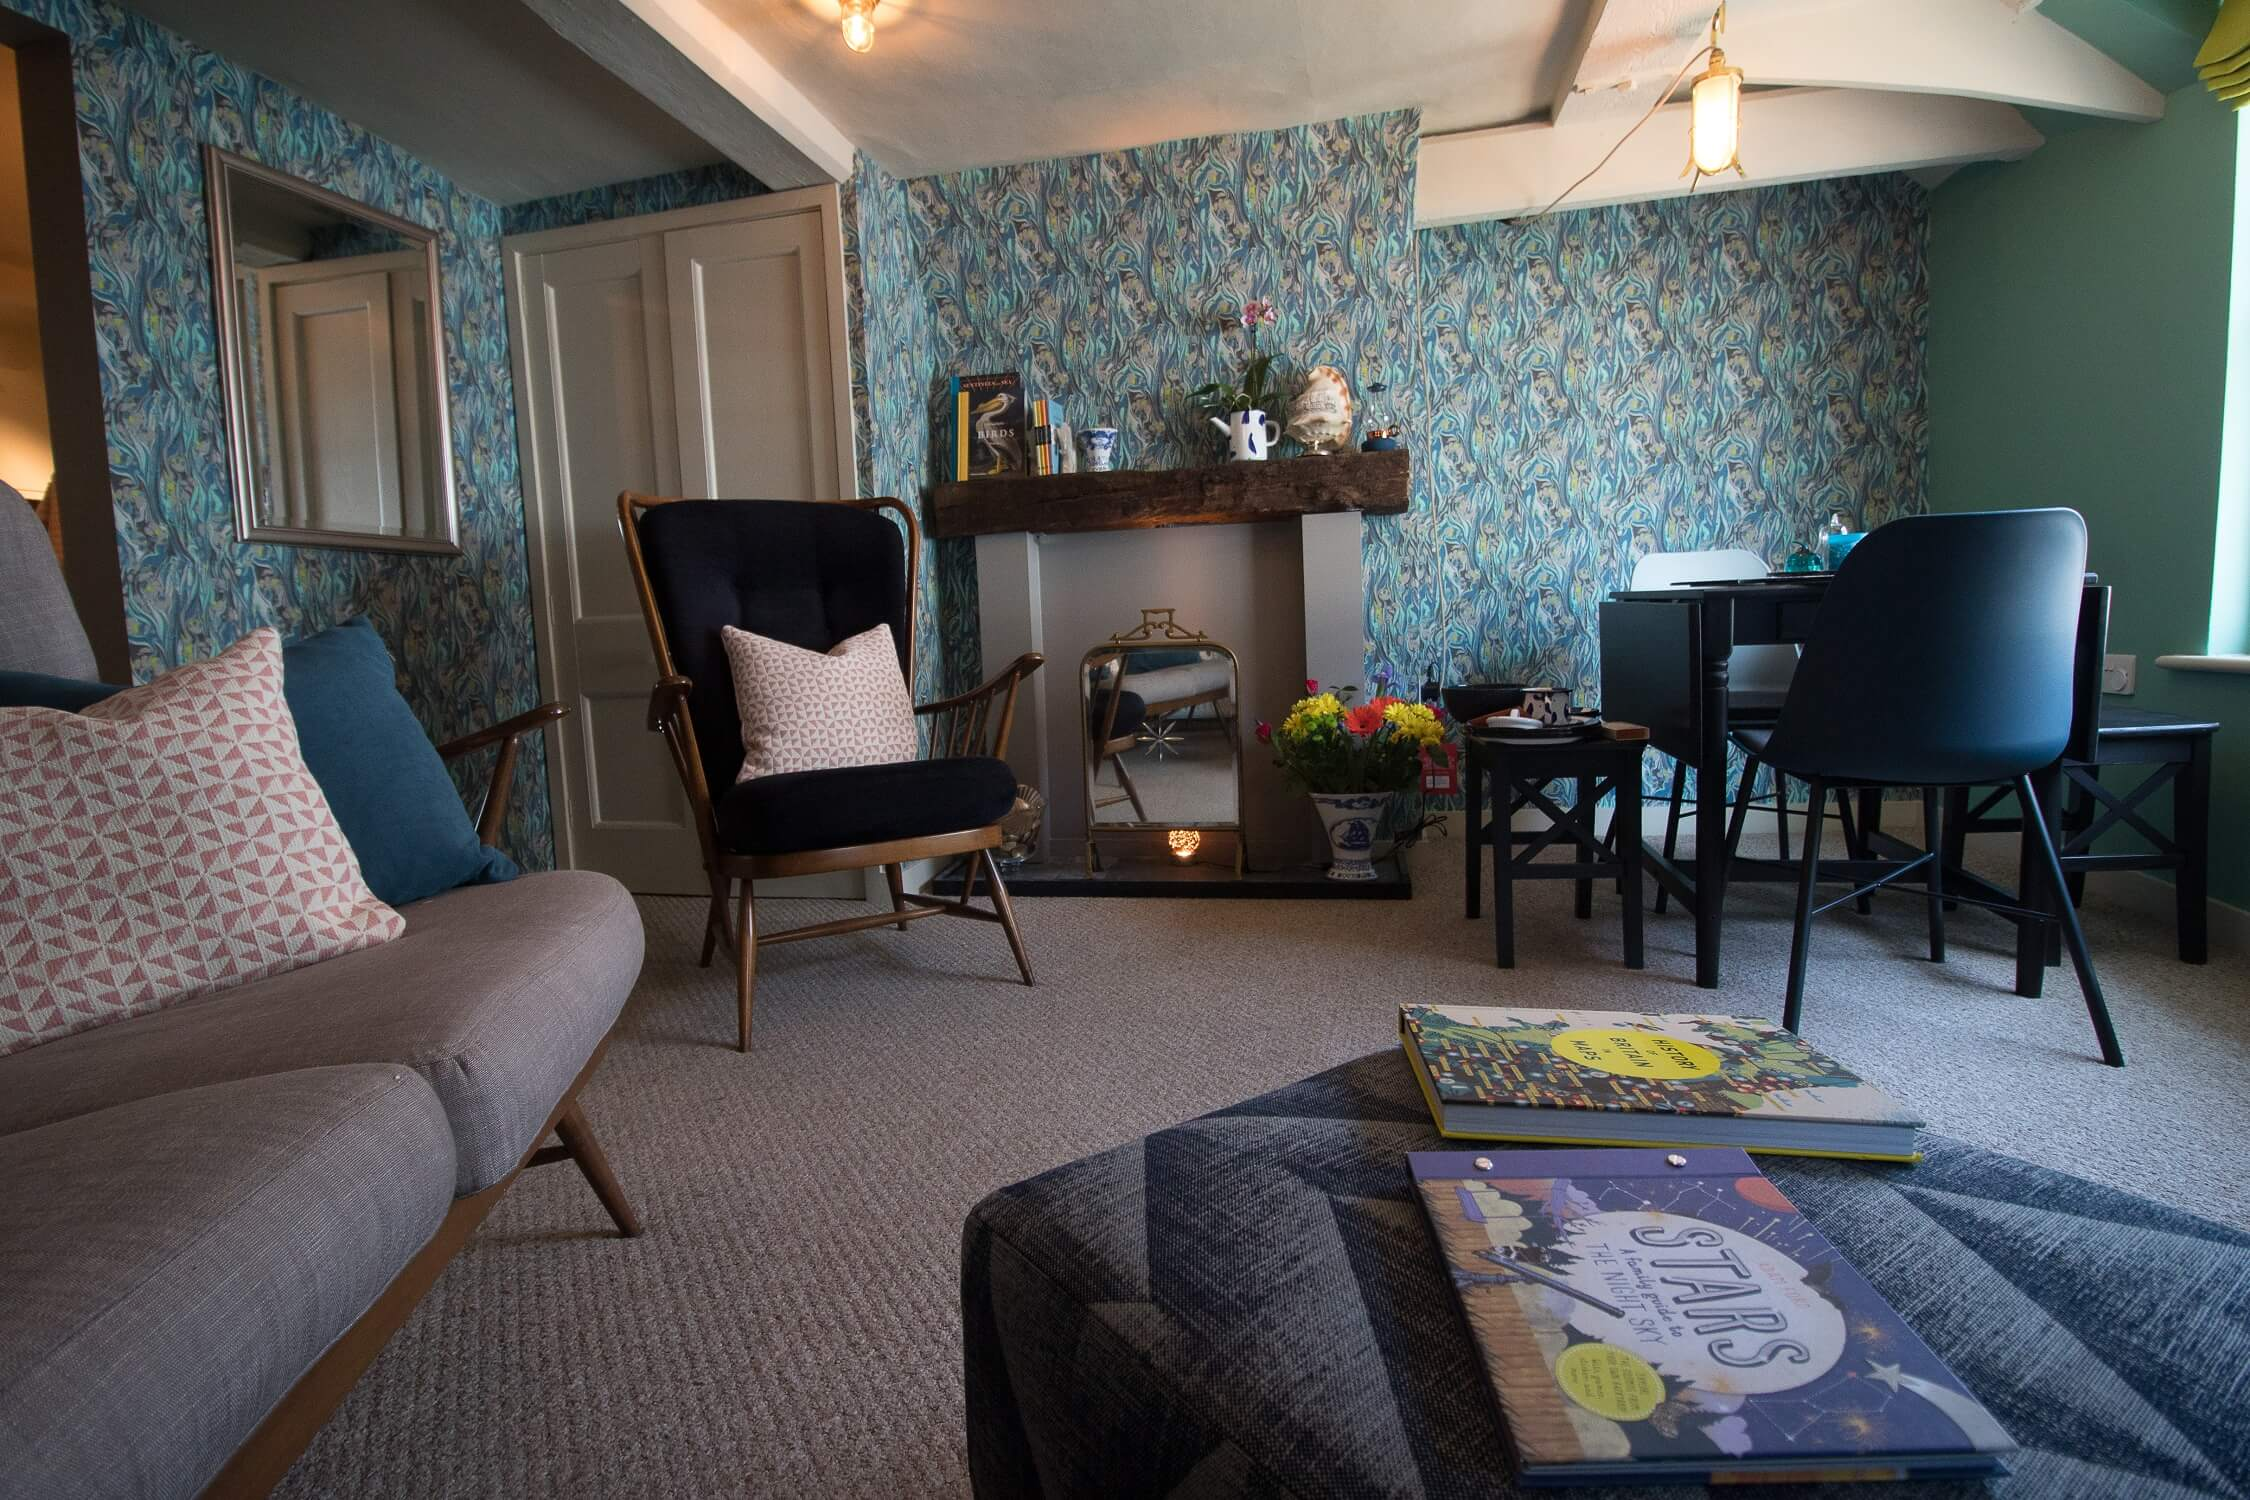 The Crow's Nest Rye - cosy sitting room with dining table for 4 people. Luxury self catering holiday home.